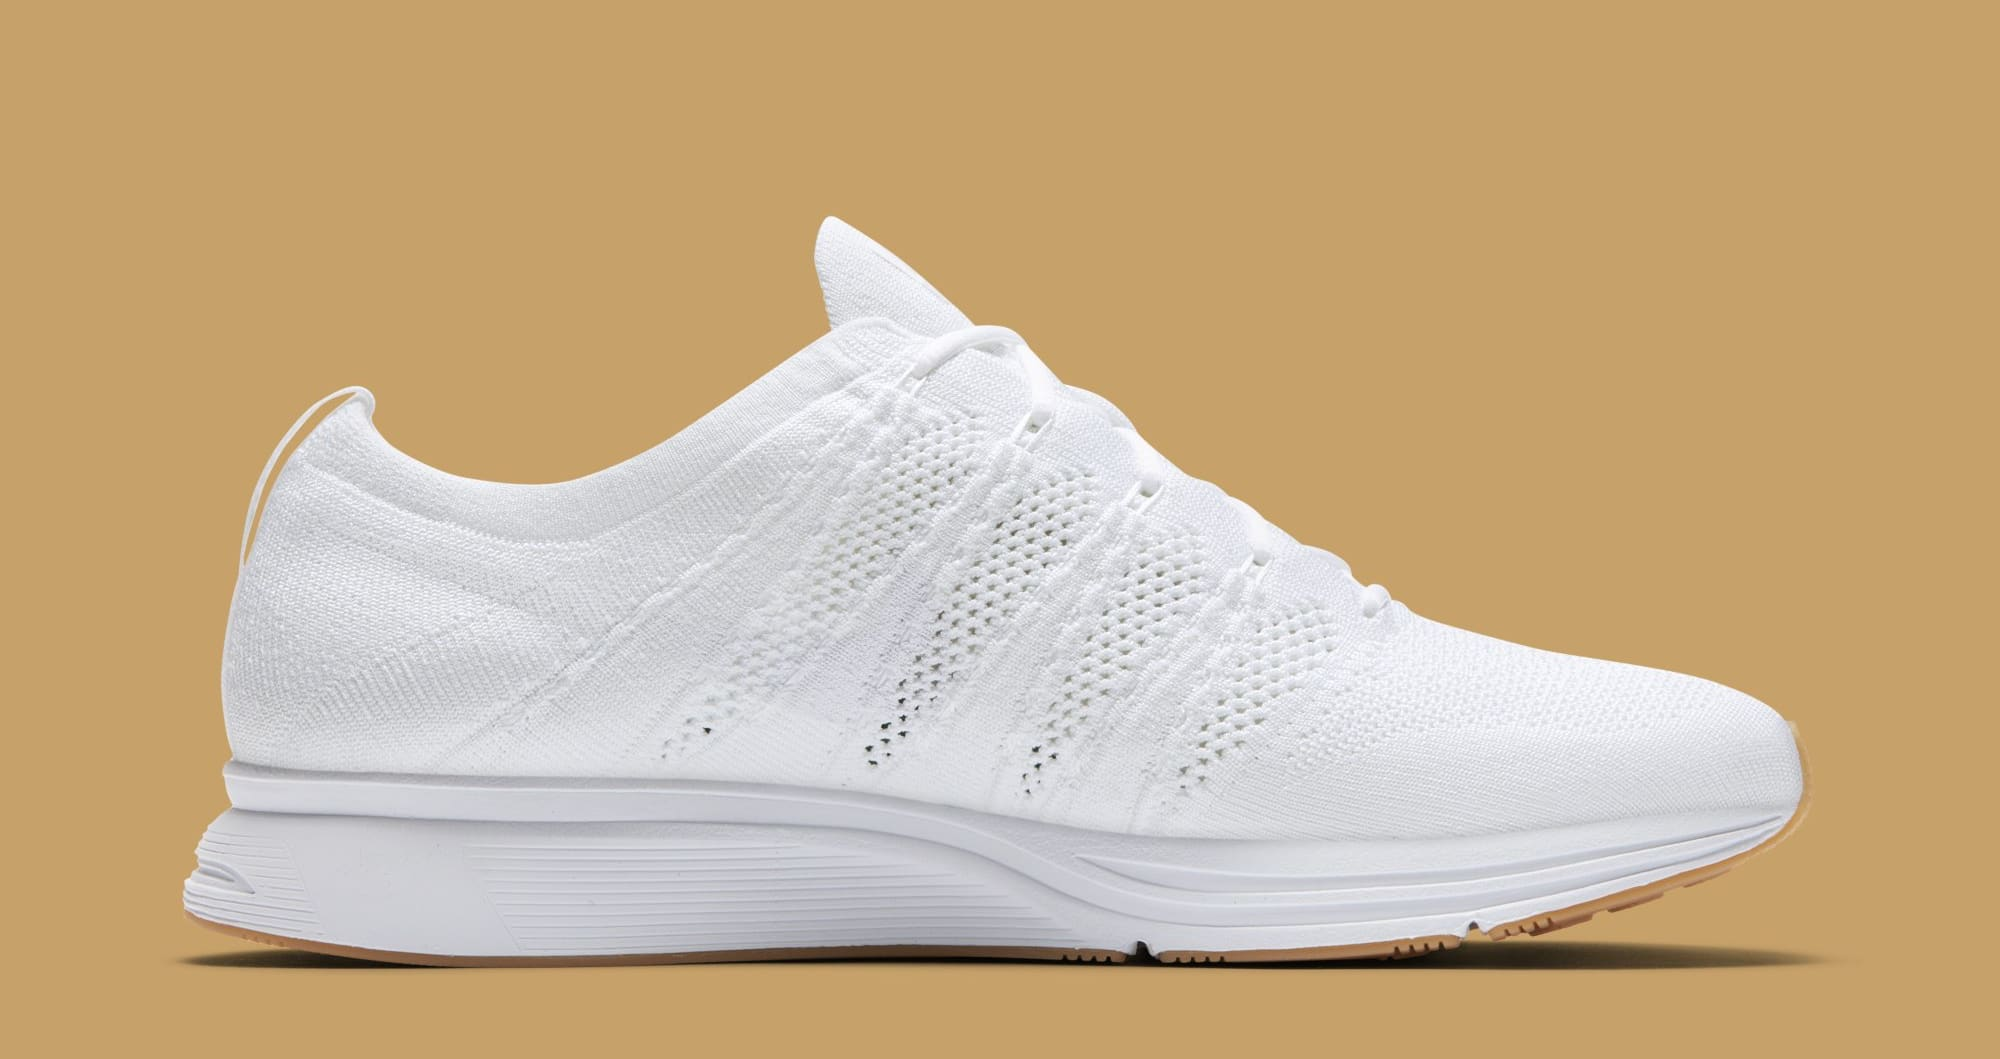 4bcd08b51c272 ... coupon code for image via nike nike flyknit trainer white gum ah8396  102 medial 9a629 9ab82